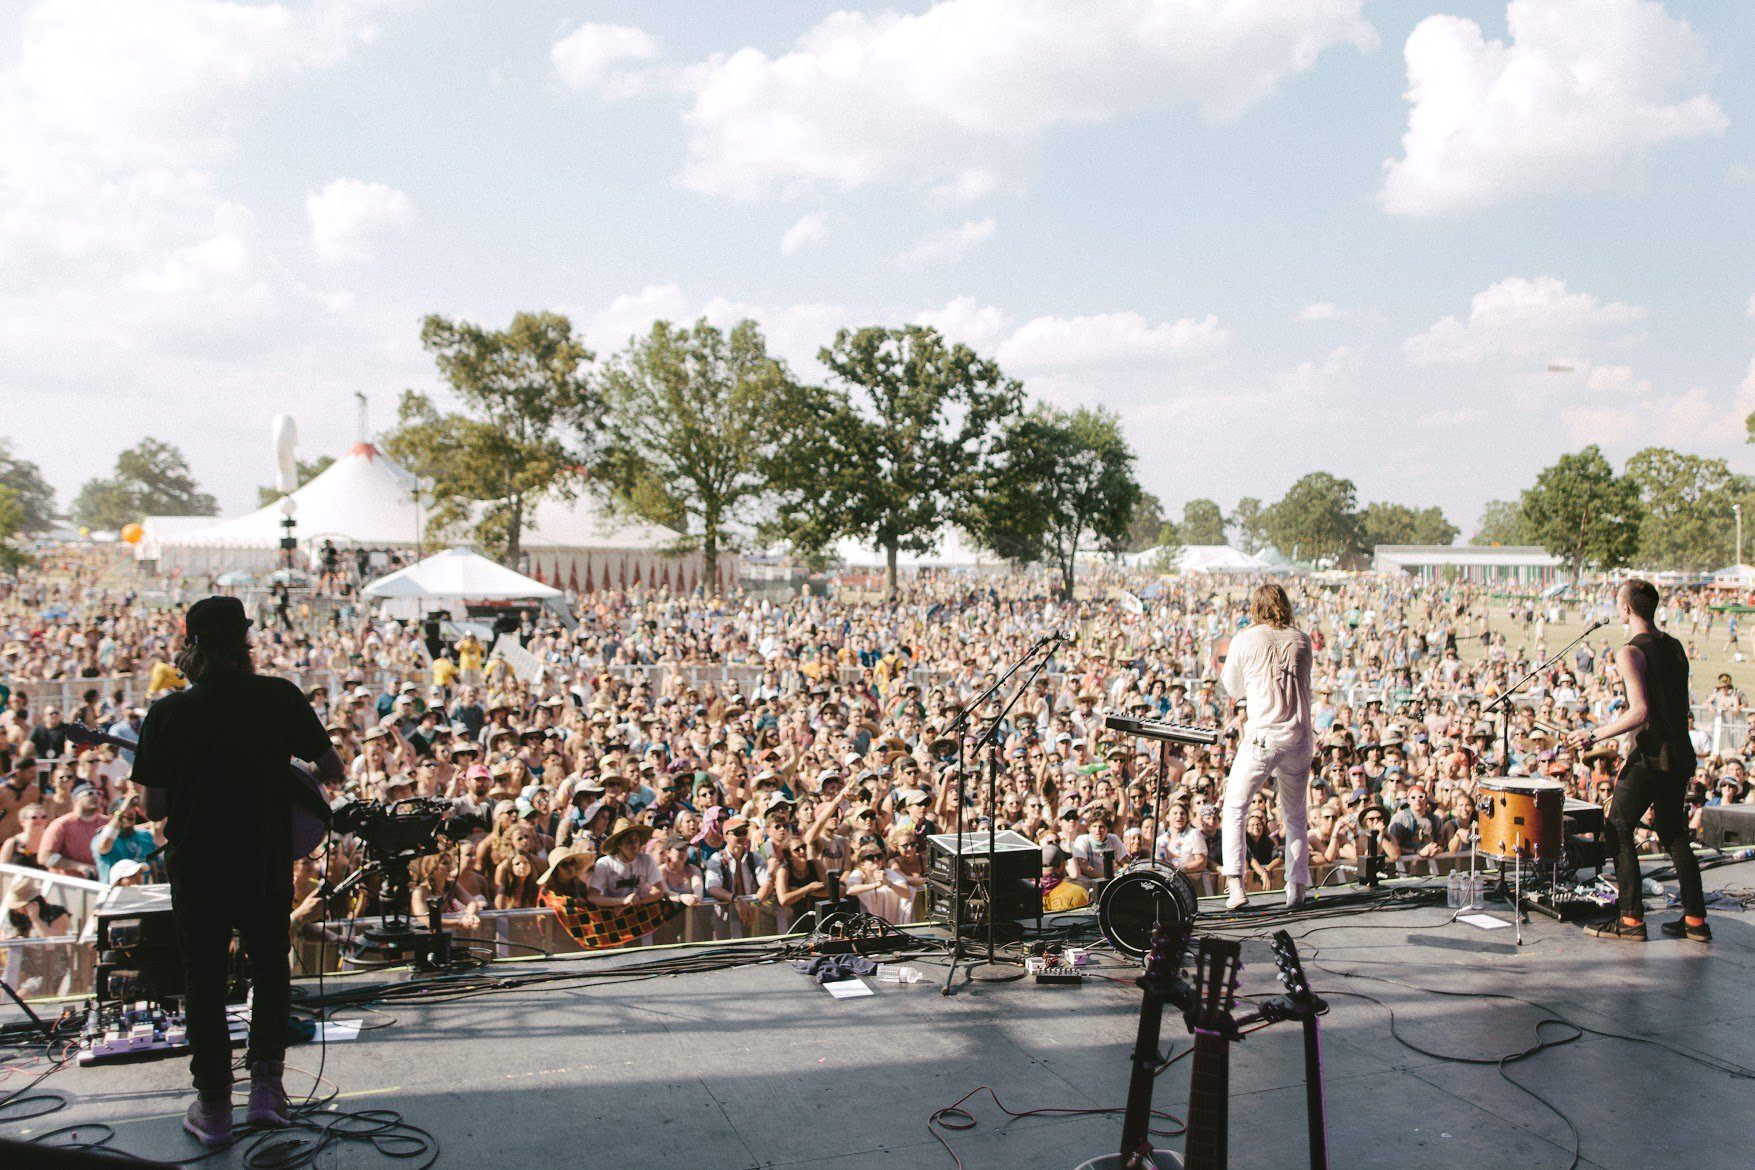 Judah & the Lion playing at Bonnaroo on June 11, 2016.